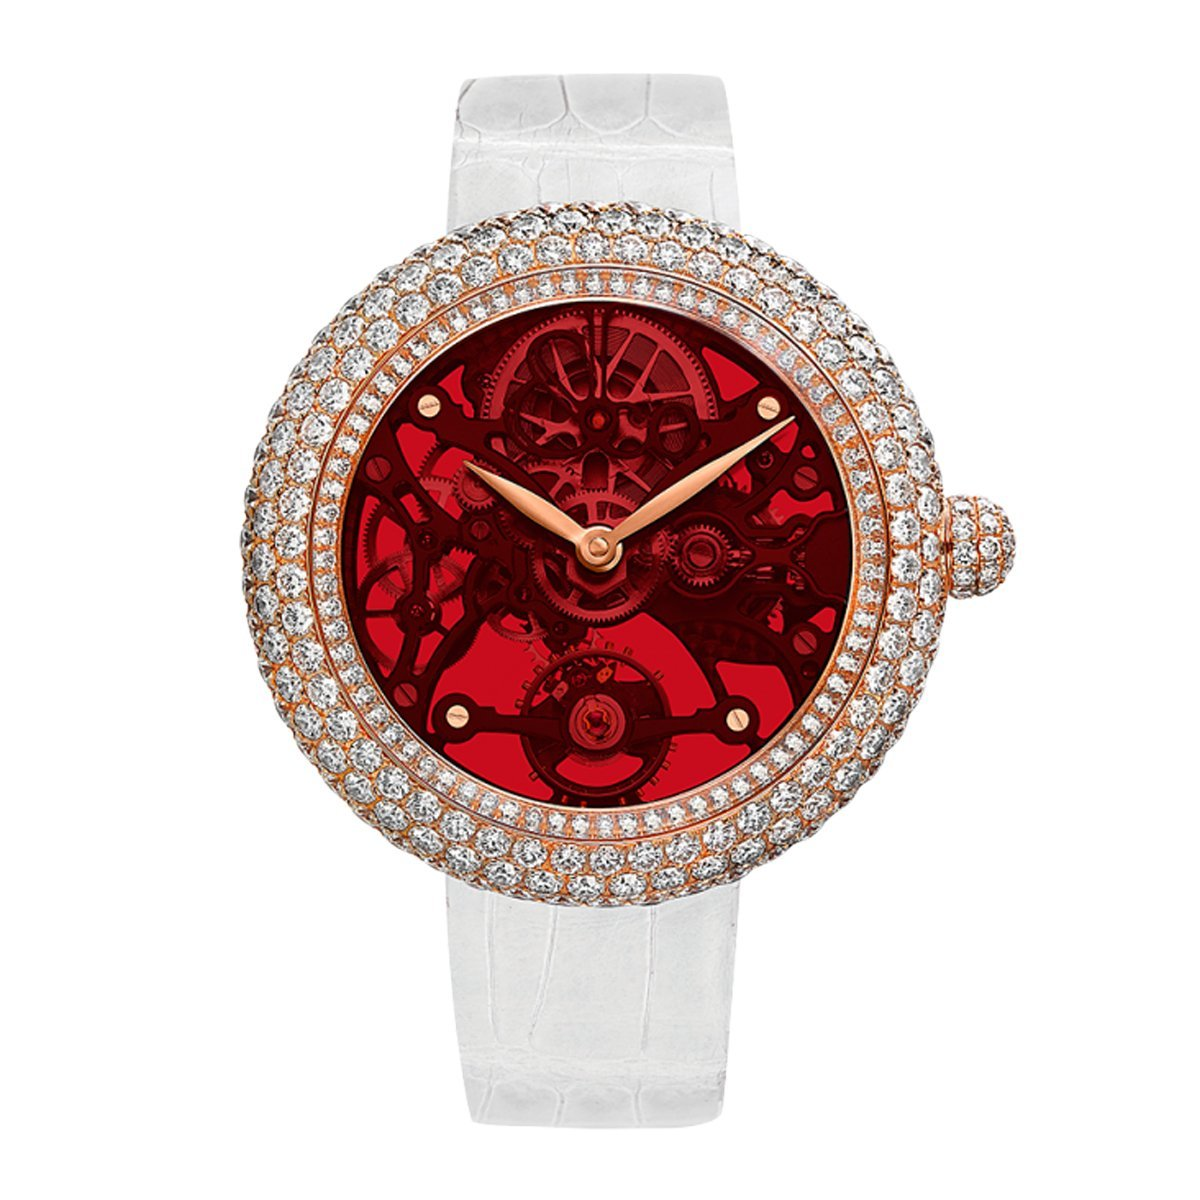 Jacob & Co. Brilliant Skeleton Northern Lights Red - Watches & Crystals